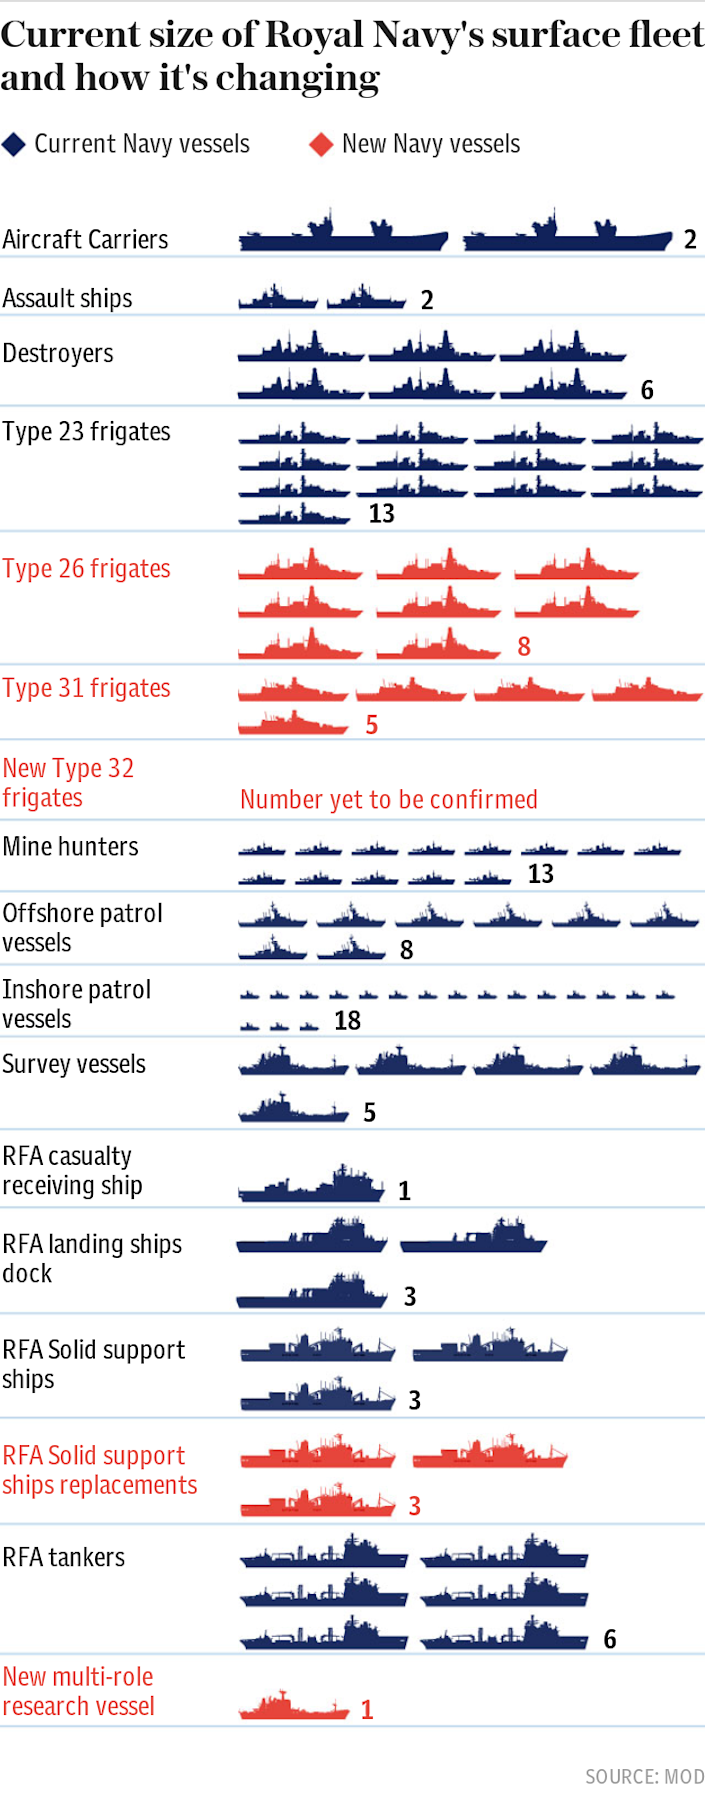 New Navy vessels